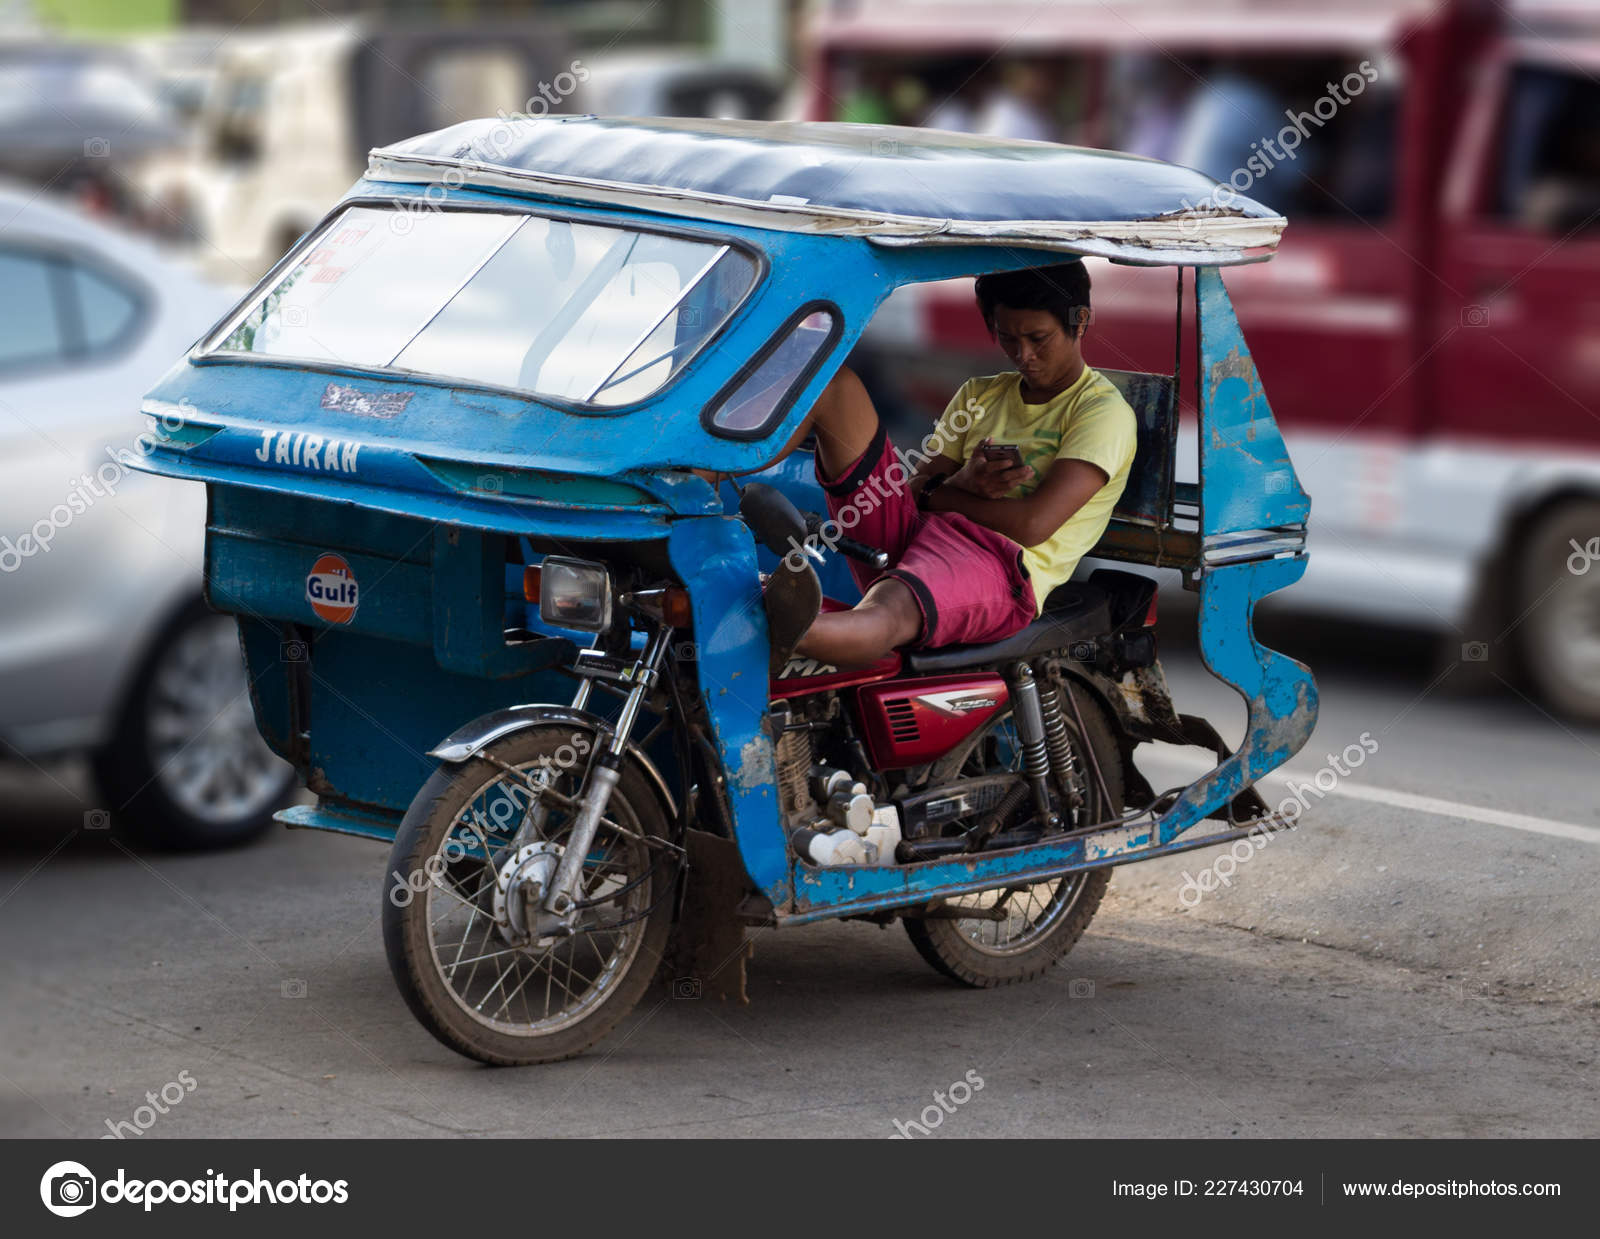 Pictures Tricycle Philippines Palawan Philippines September 2018 Tricycle Motorbike Taxi City Street Waiting Stock Editorial Photo C Al Geba 227430704